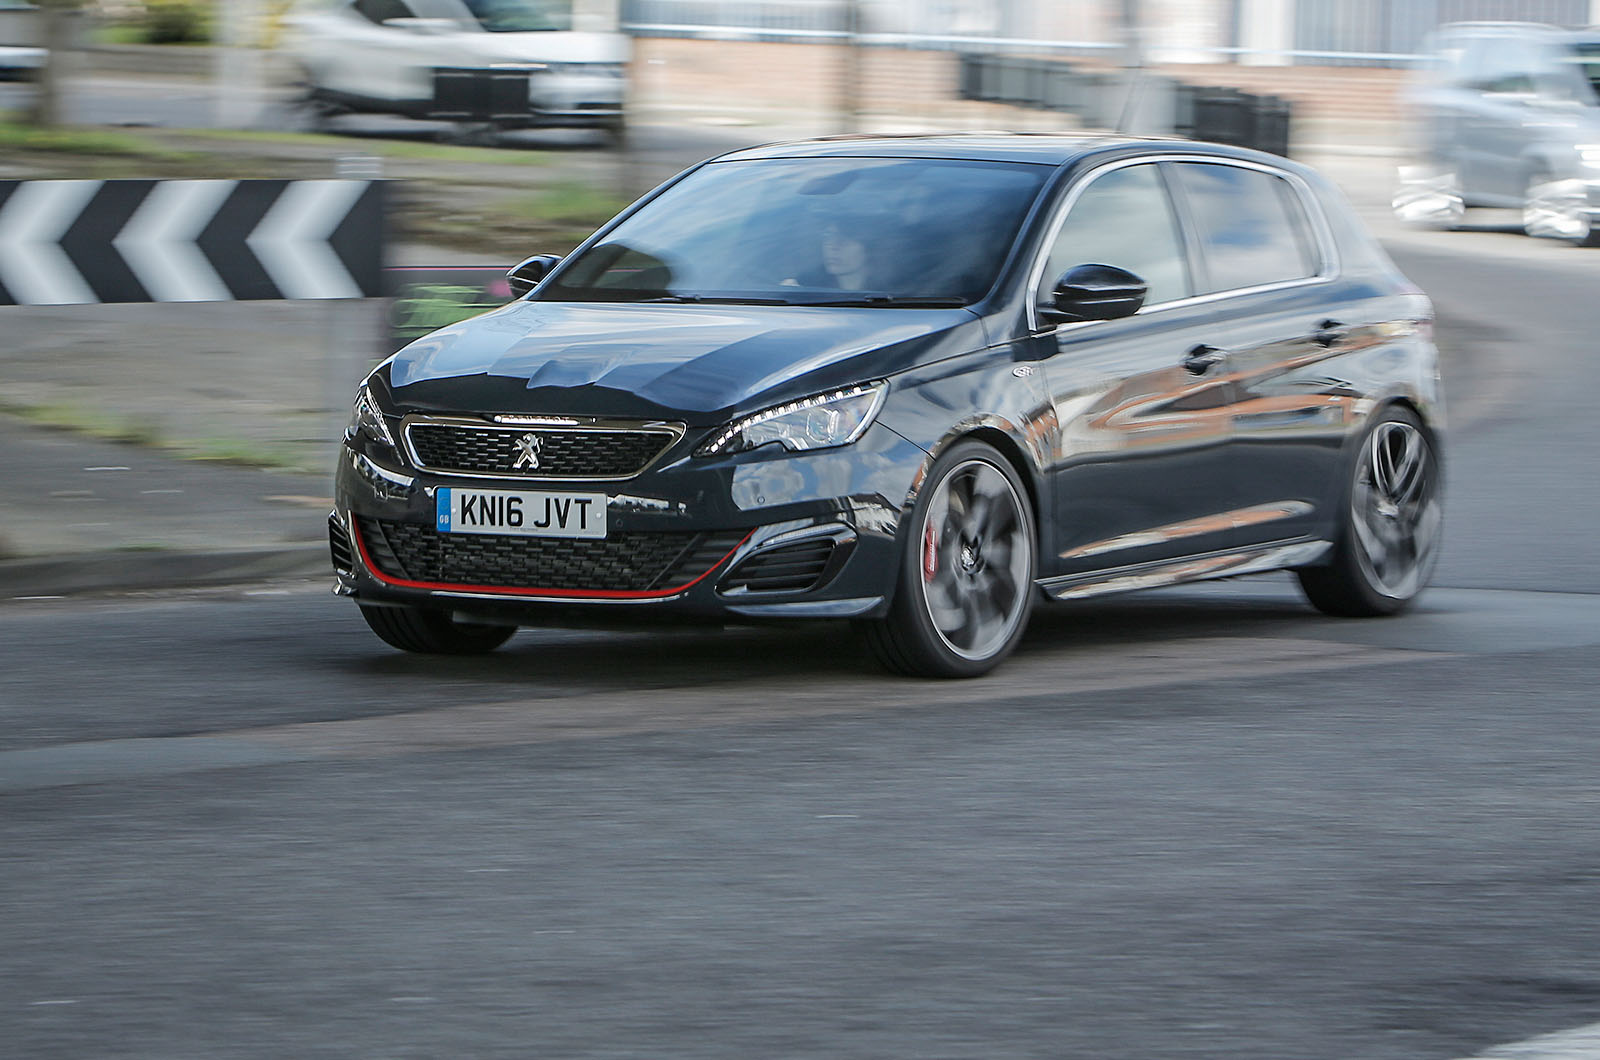 peugeot 308 gti long term test report a big leap forward autocar. Black Bedroom Furniture Sets. Home Design Ideas